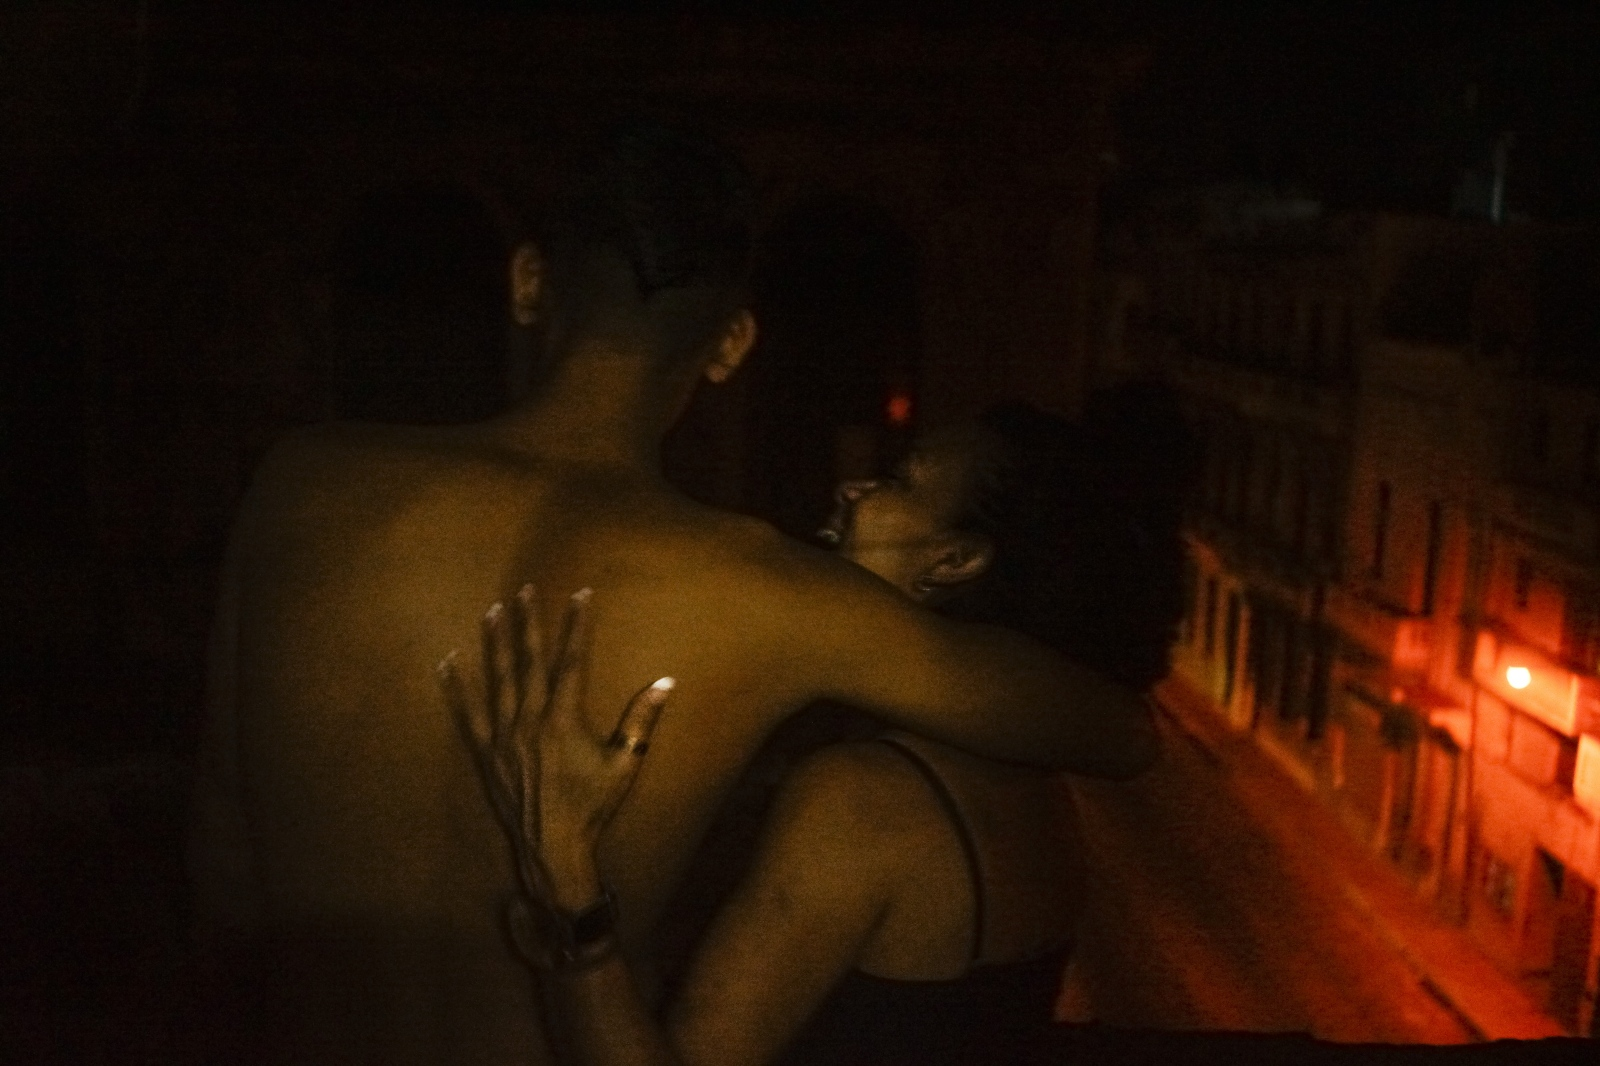 Ariam and Nidieska embrace on the balcony outside of their room.